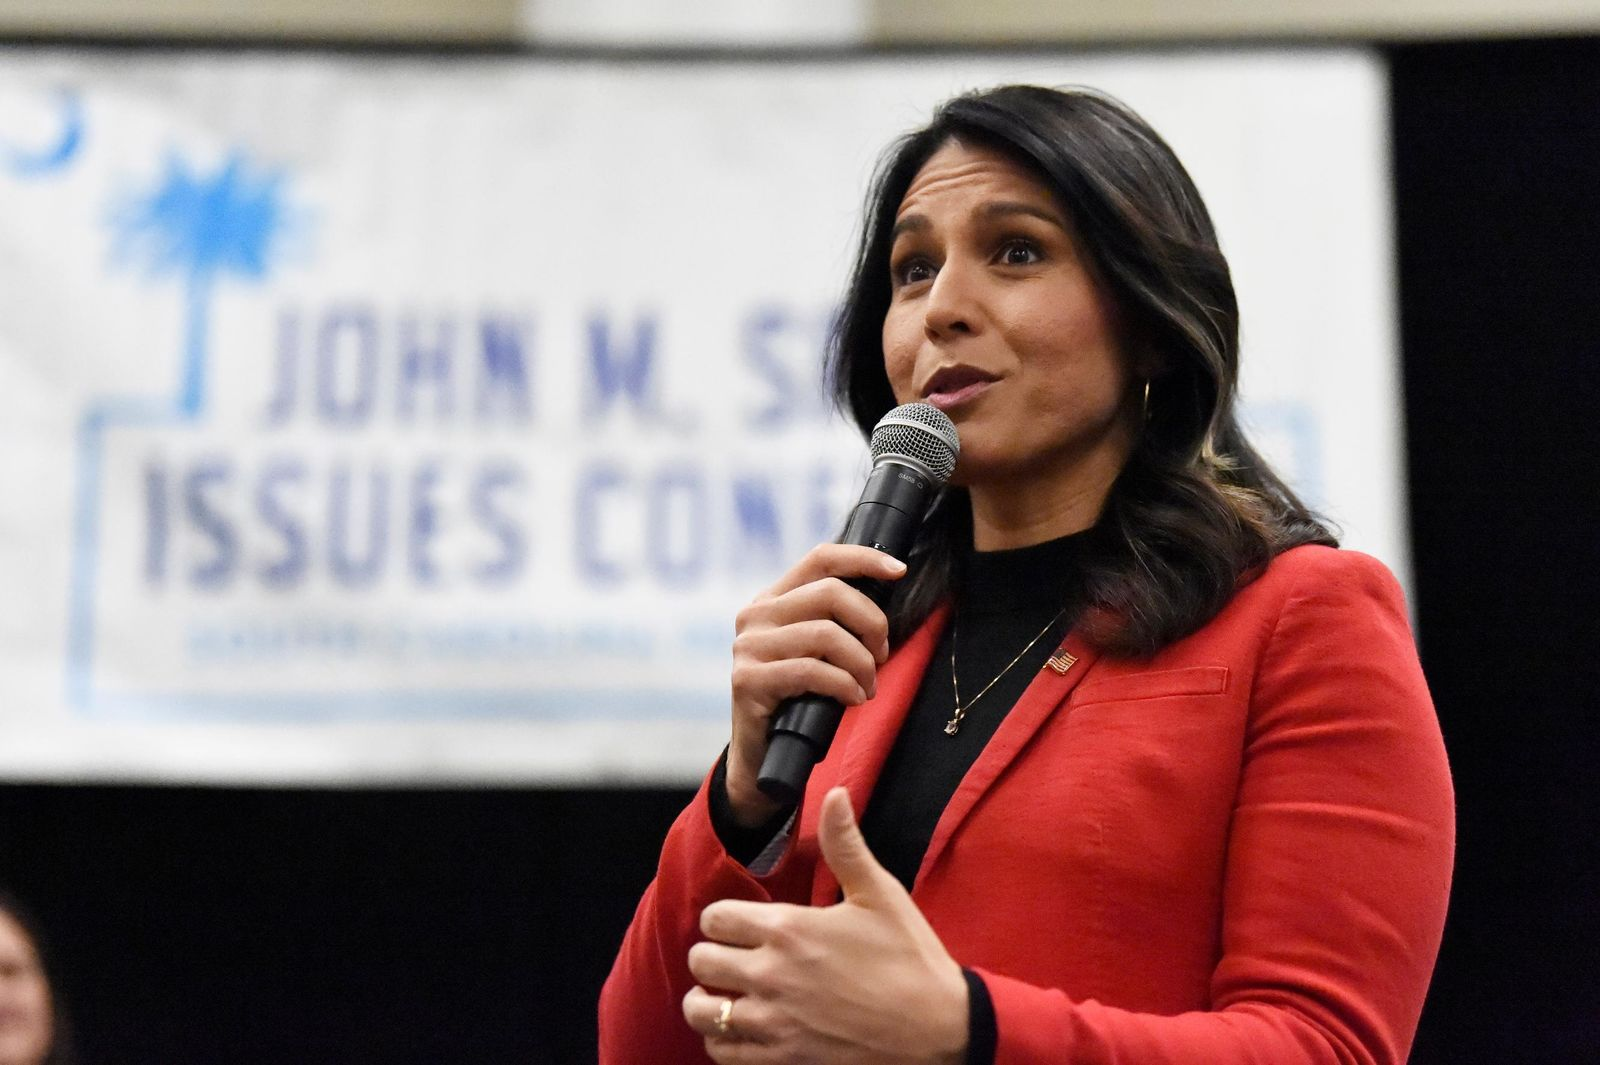 Democratic presidential candidate U.S. Rep. Tulsi Gabbard, D-Hawaii speaks to Democrats gathered at the Spratt Issues Conference in Greenville, S.C., Saturday, Dec. 14, 2019.  (AP Photo/Meg Kinnard)